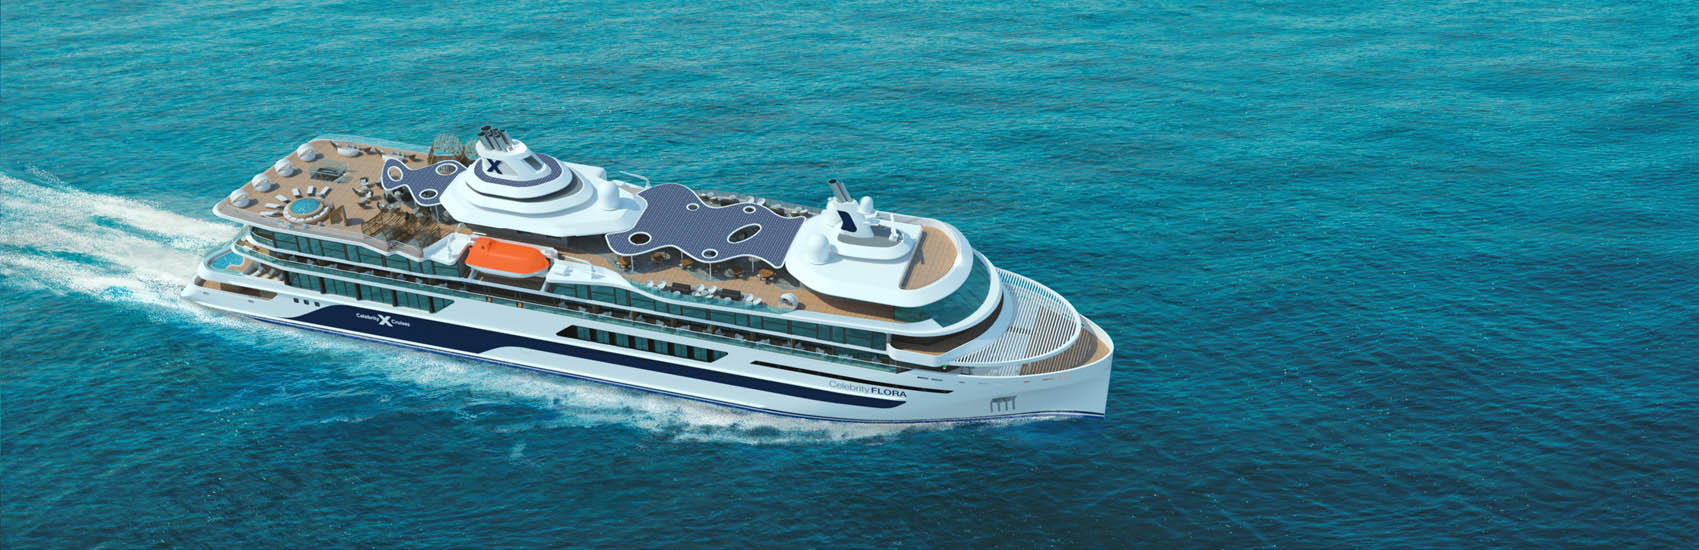 Sail Your Way With Celebrity Cruises 3